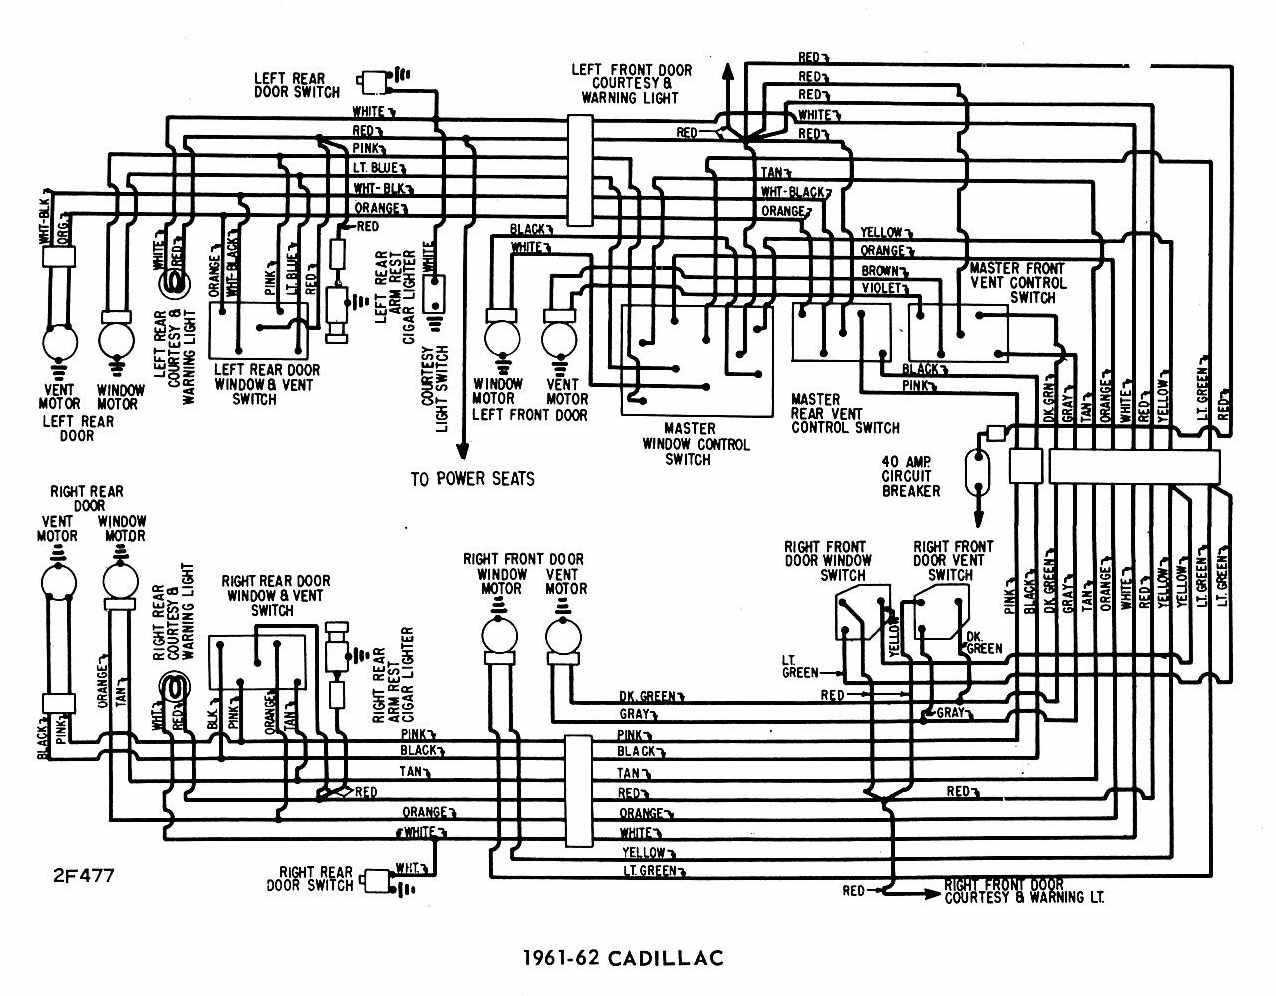 windows wiring diagram of 1961 62 cadillac